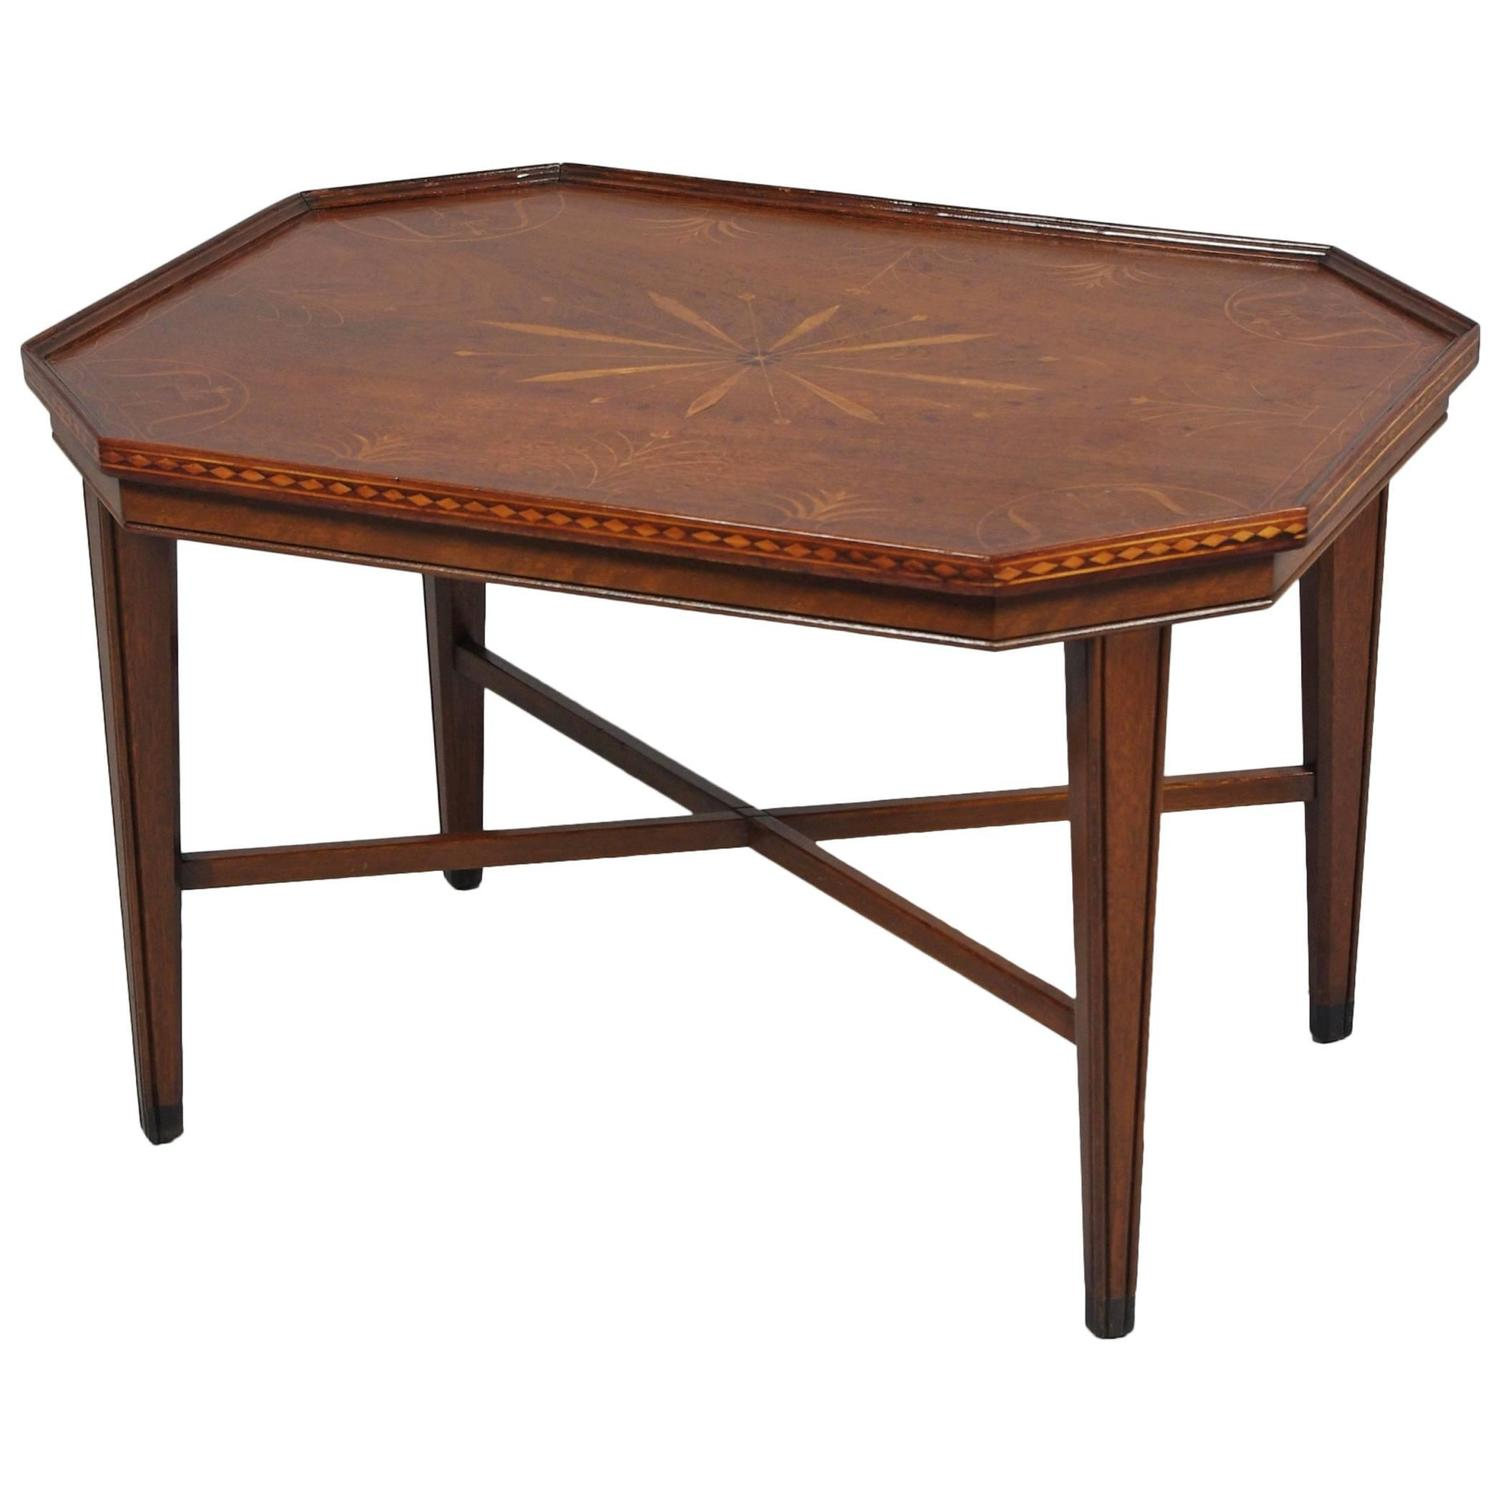 Delightful Inlaid Walnut Coffee Table At 1stdibs